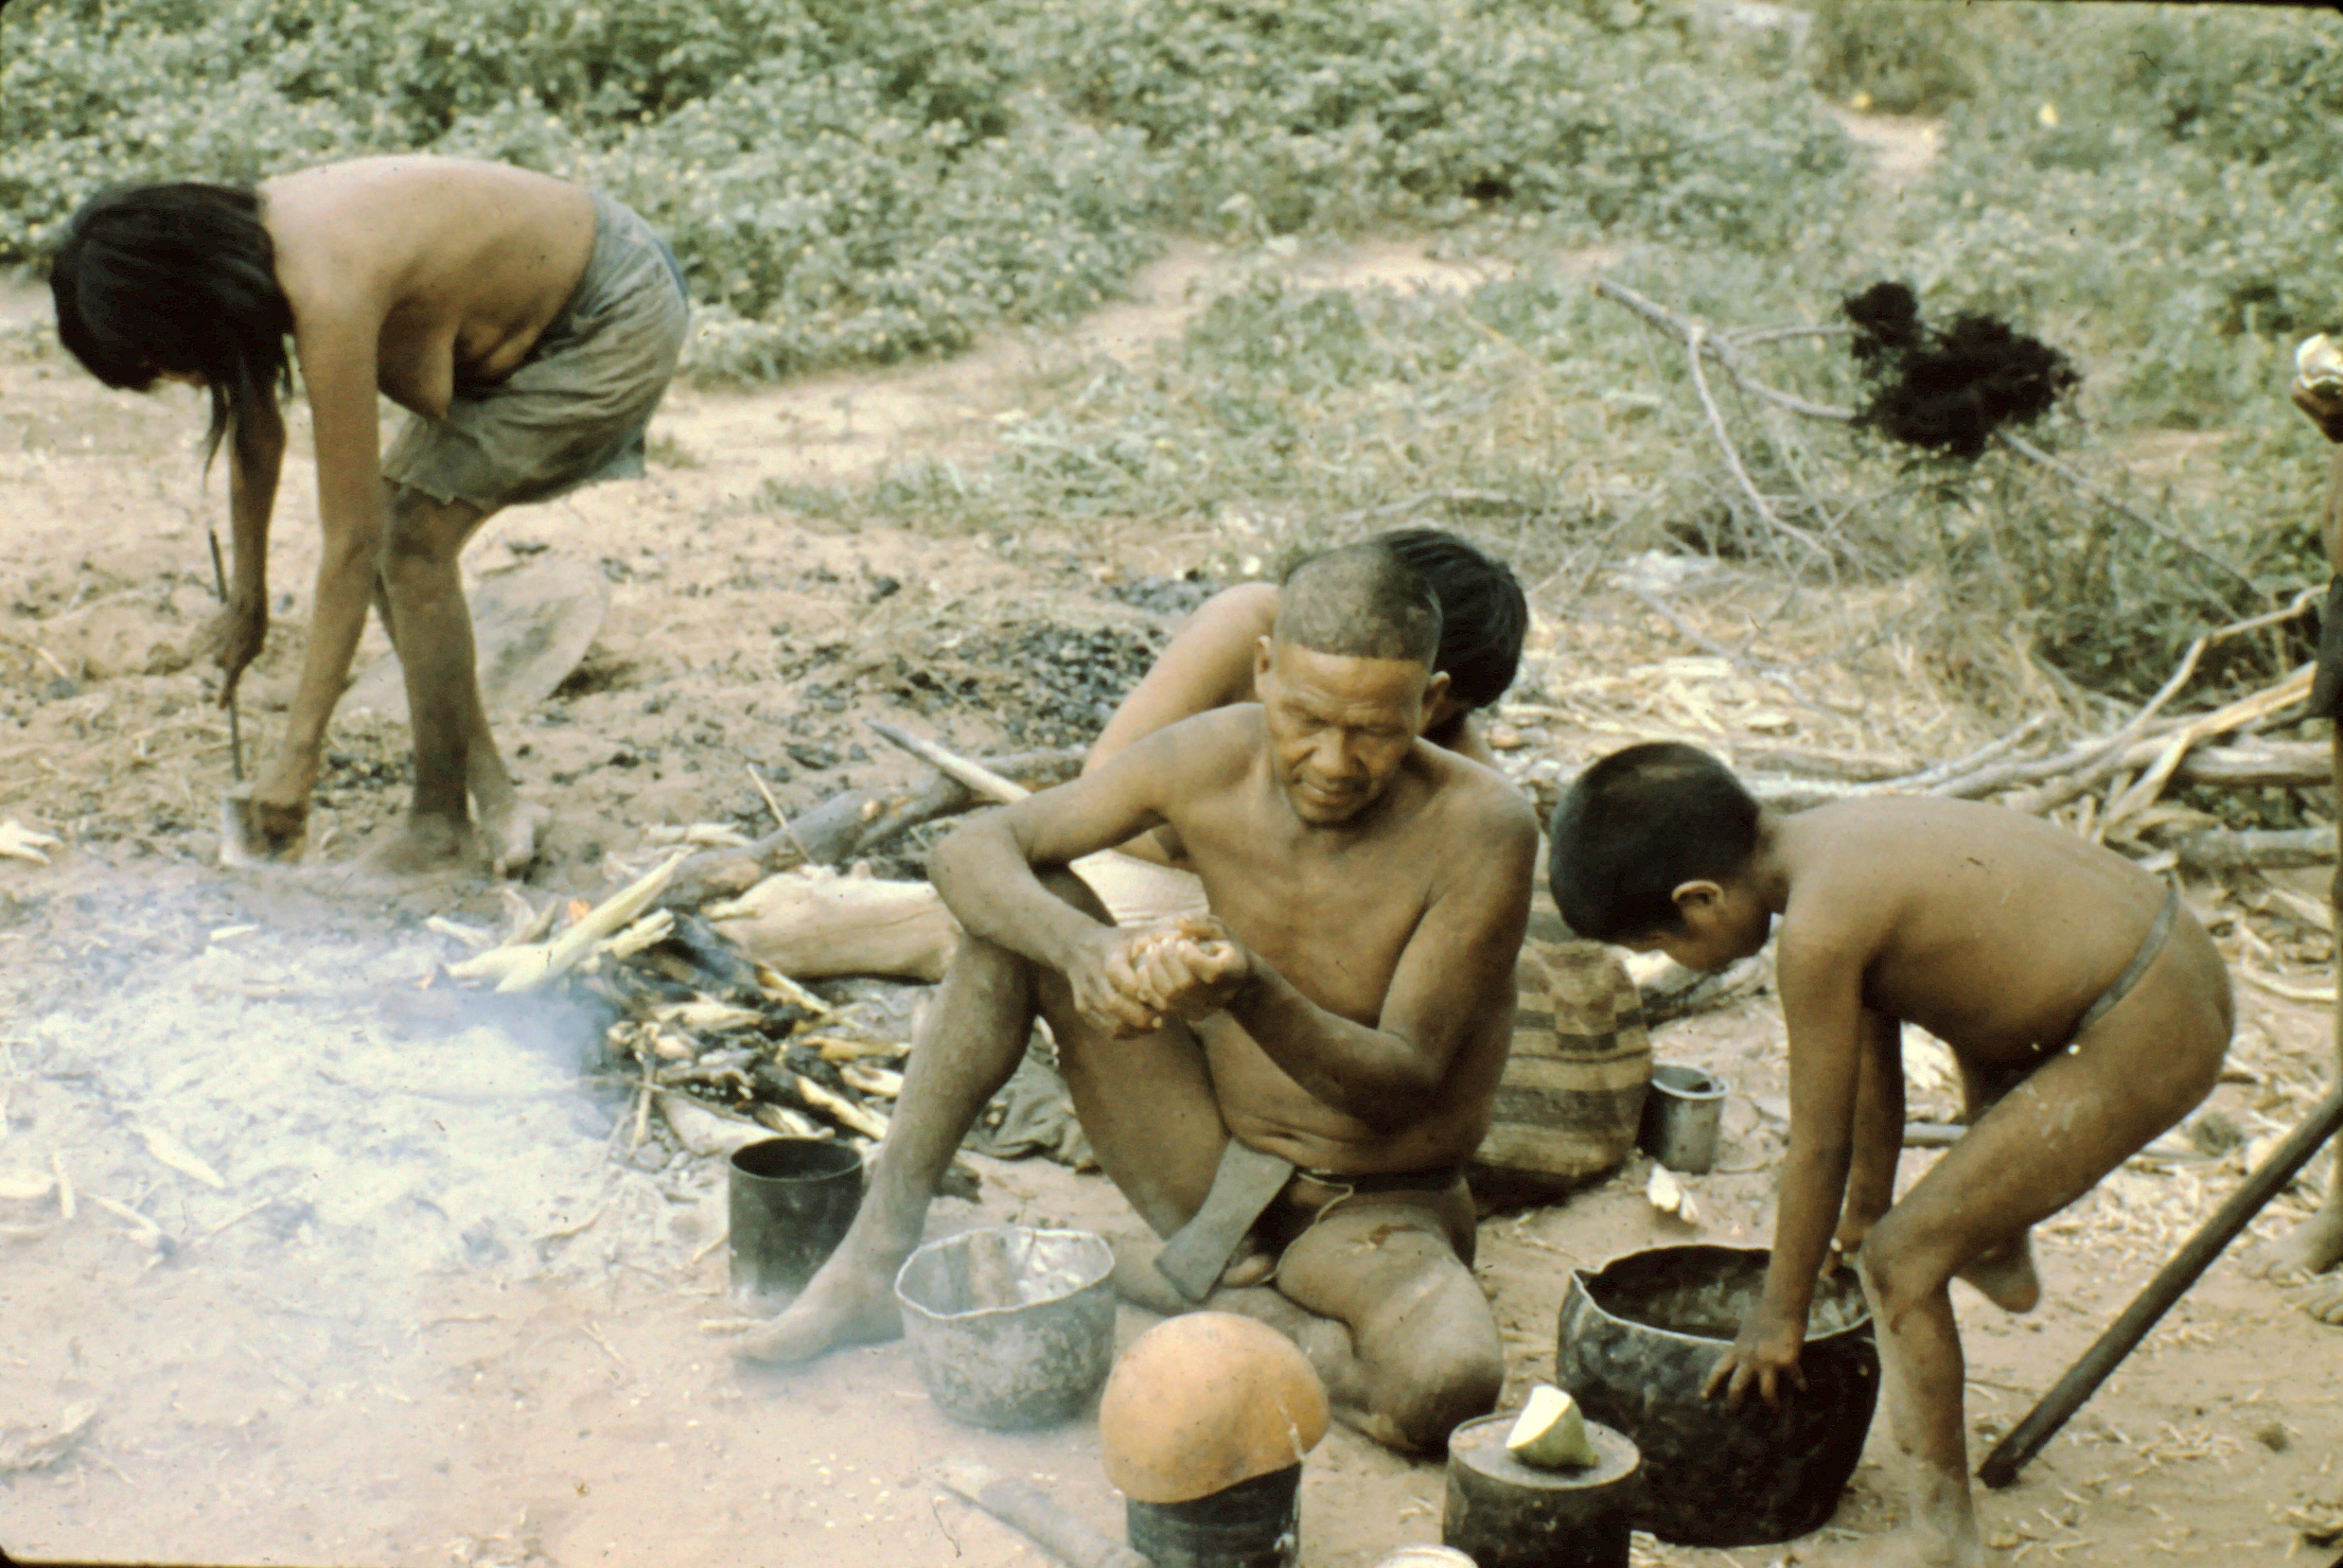 Ayoré Family begins to cook evening meal